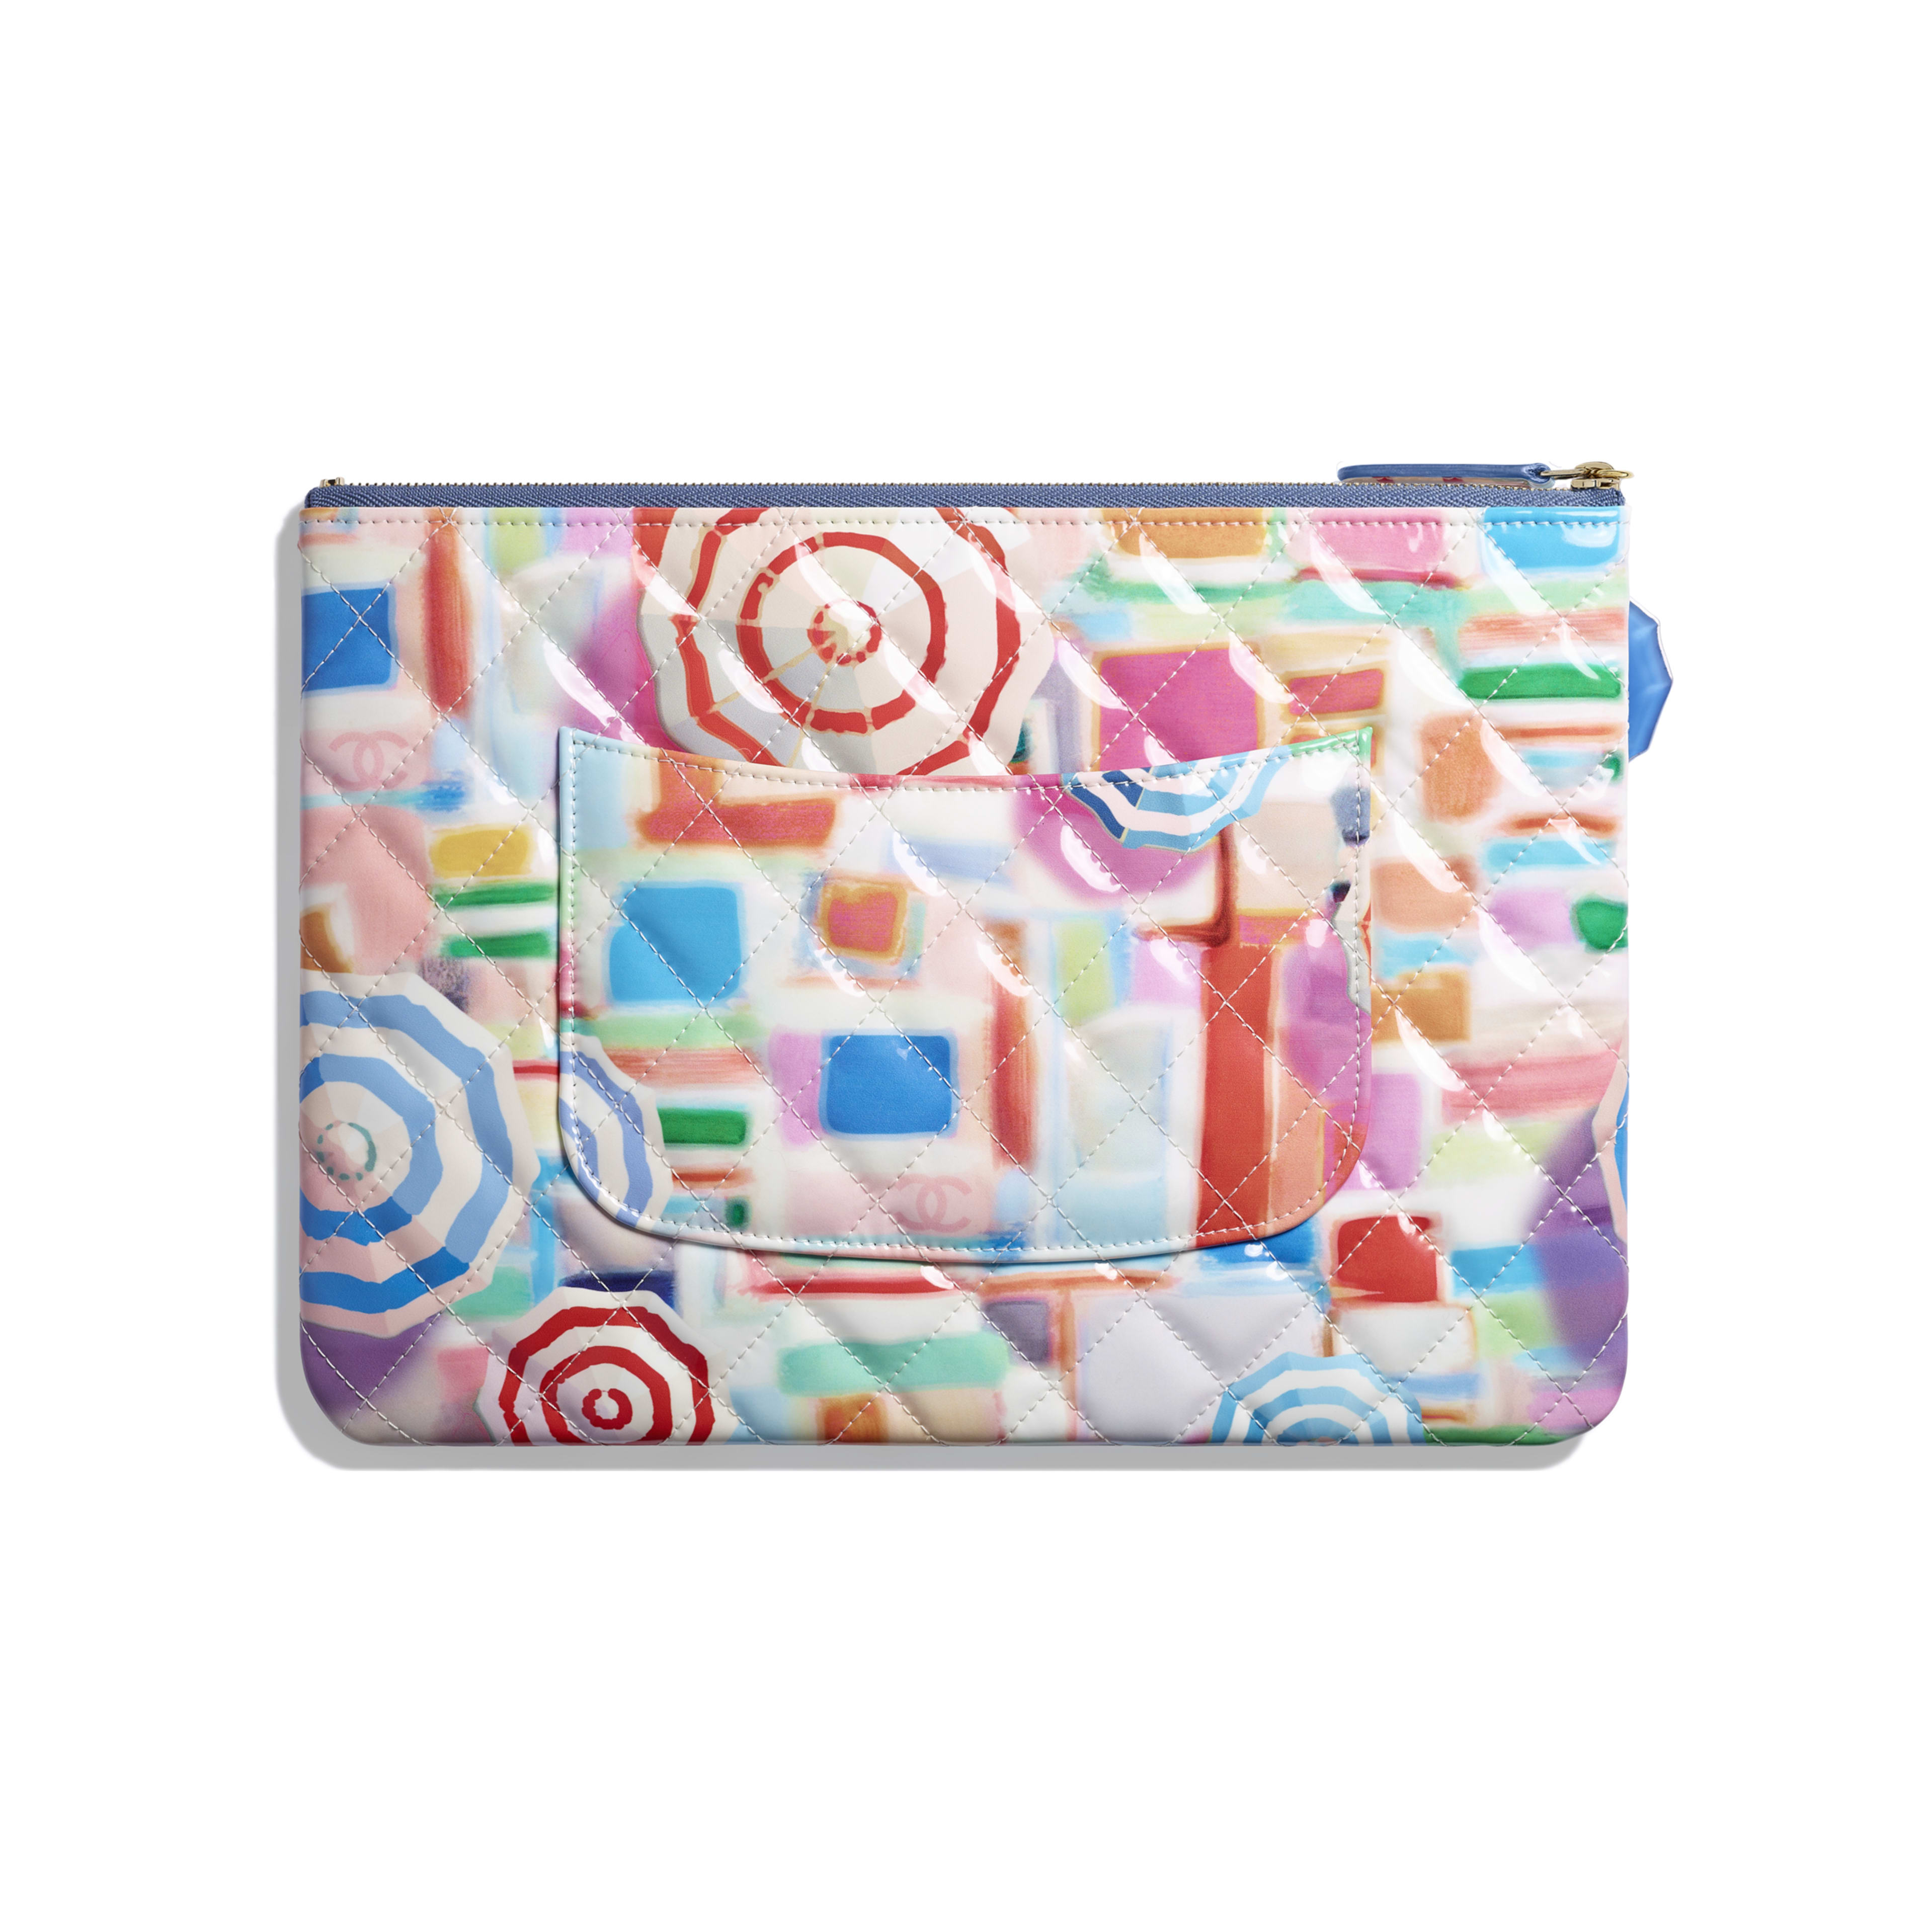 Classic Pouch - Multicolor - Printed Patent Calfskin & Gold-Tone Metal - Alternative view - see full sized version